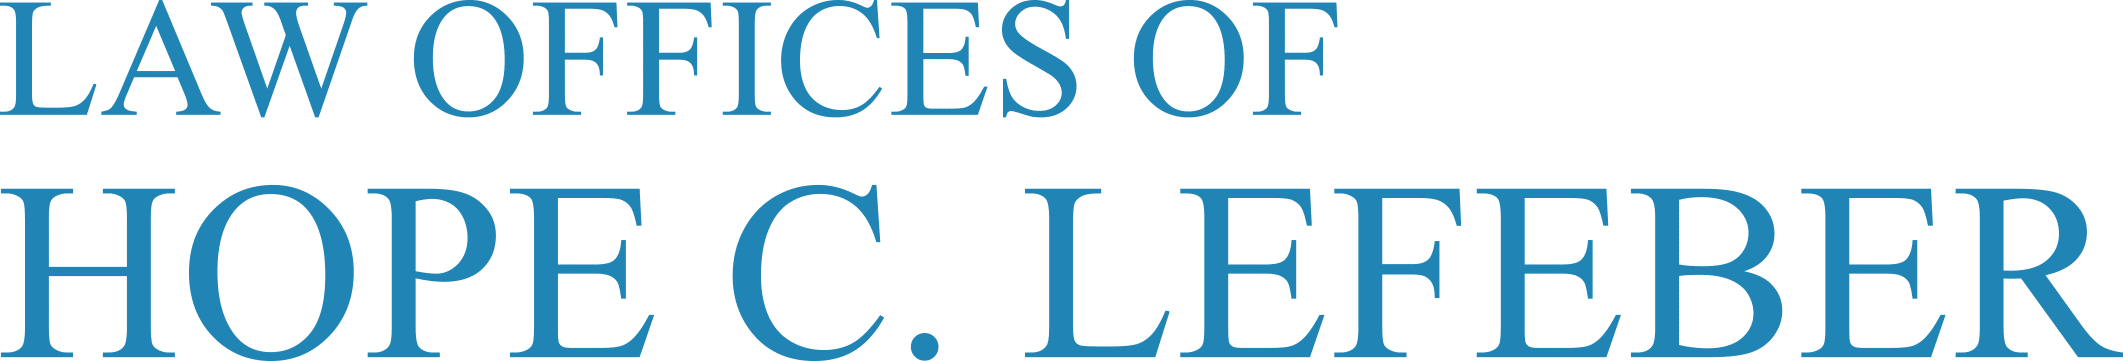 Law Offices of Hope Lefeber